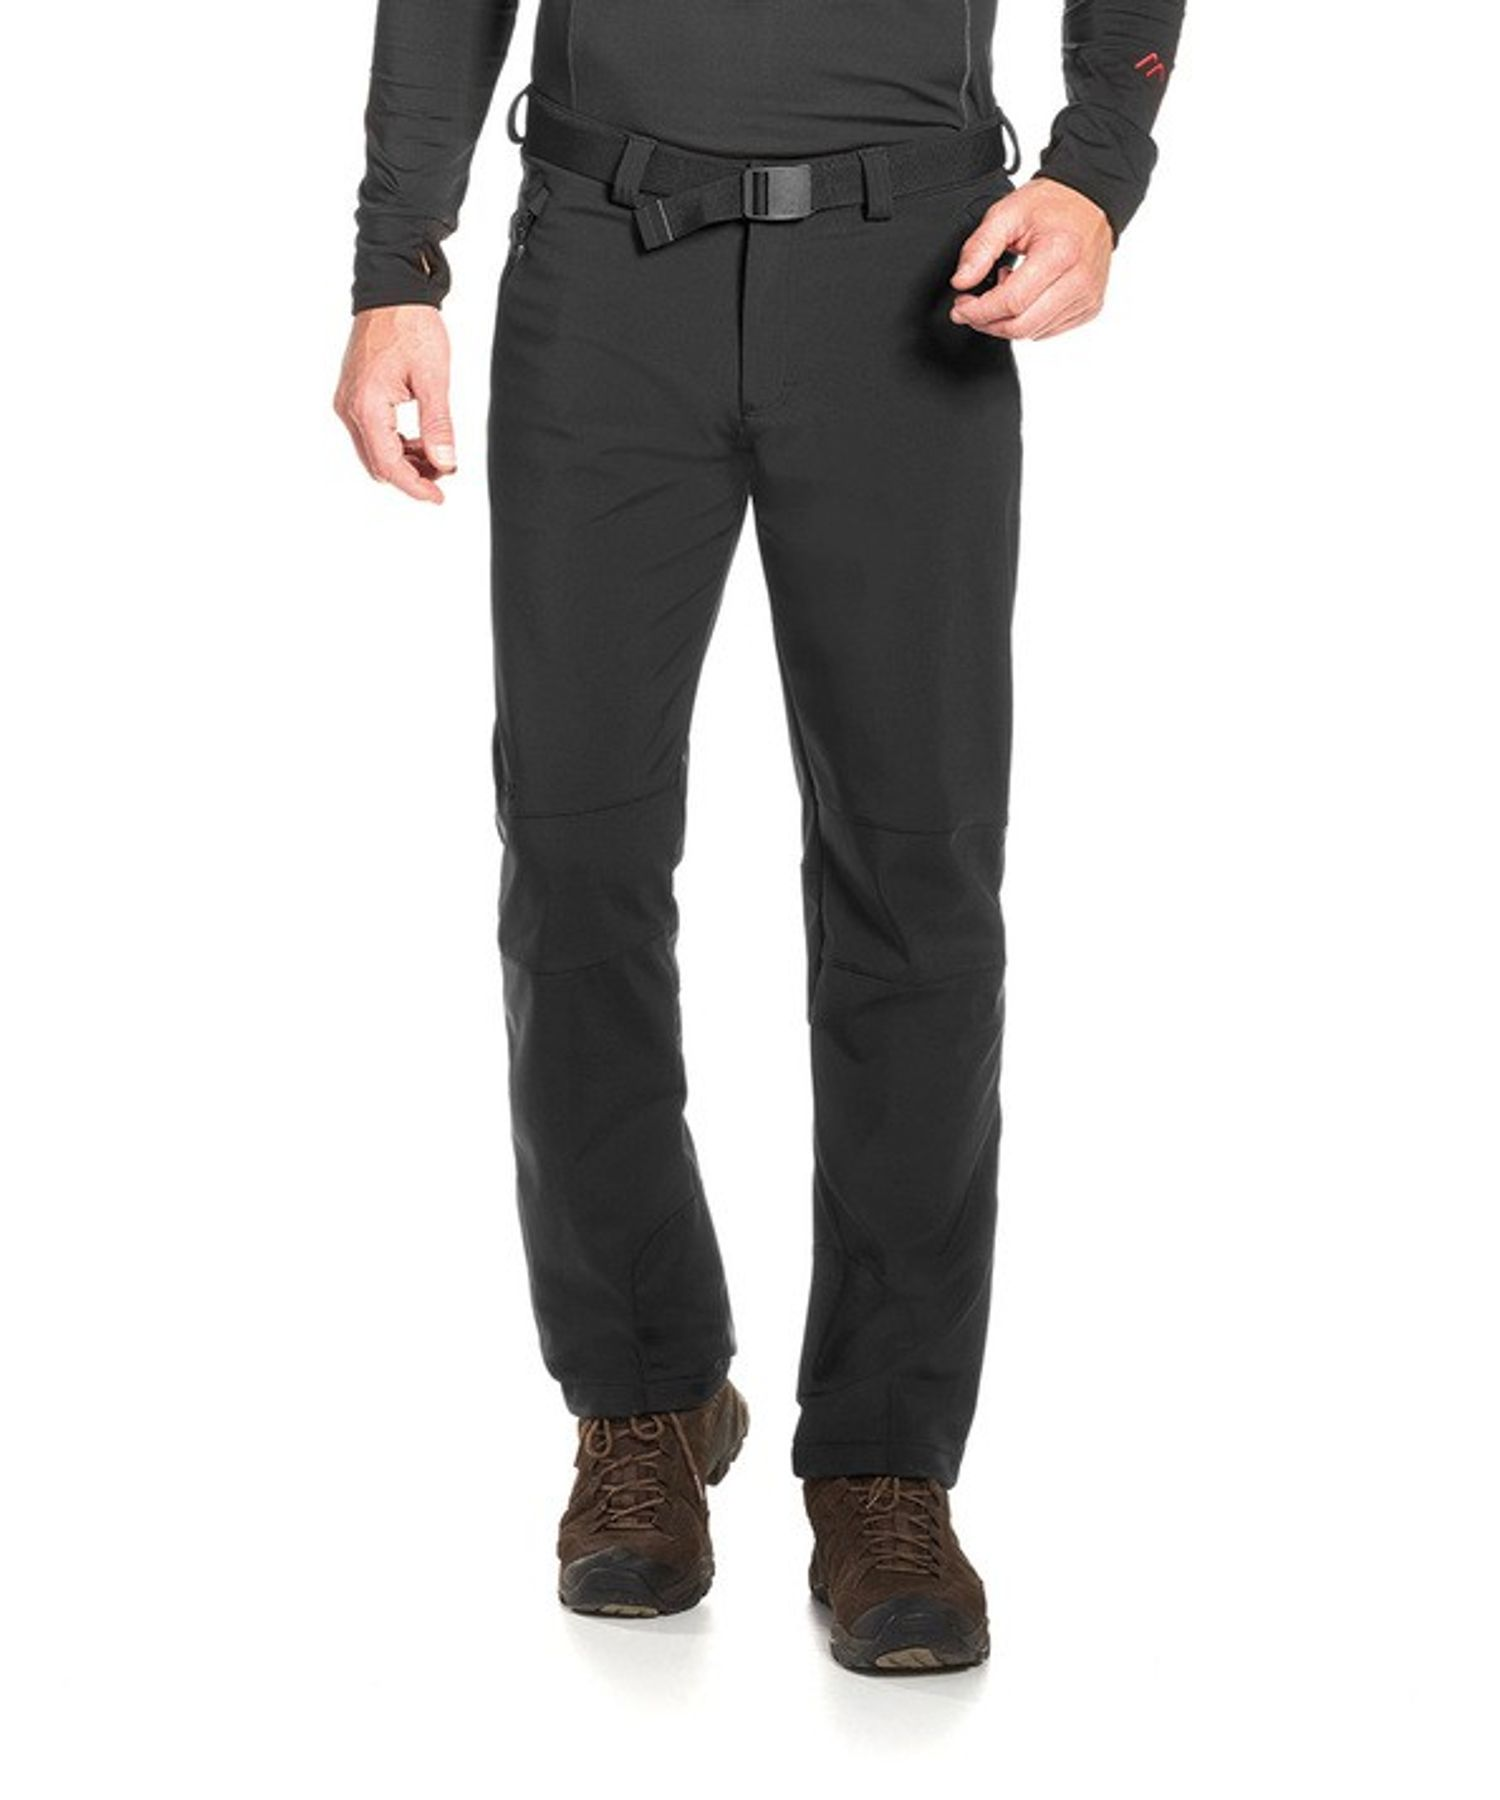 Maier Sports- Herren Funktionelle Softshell Touren - und Wanderhose in Black Artikel Tech Pants M (136008) – Bild 7